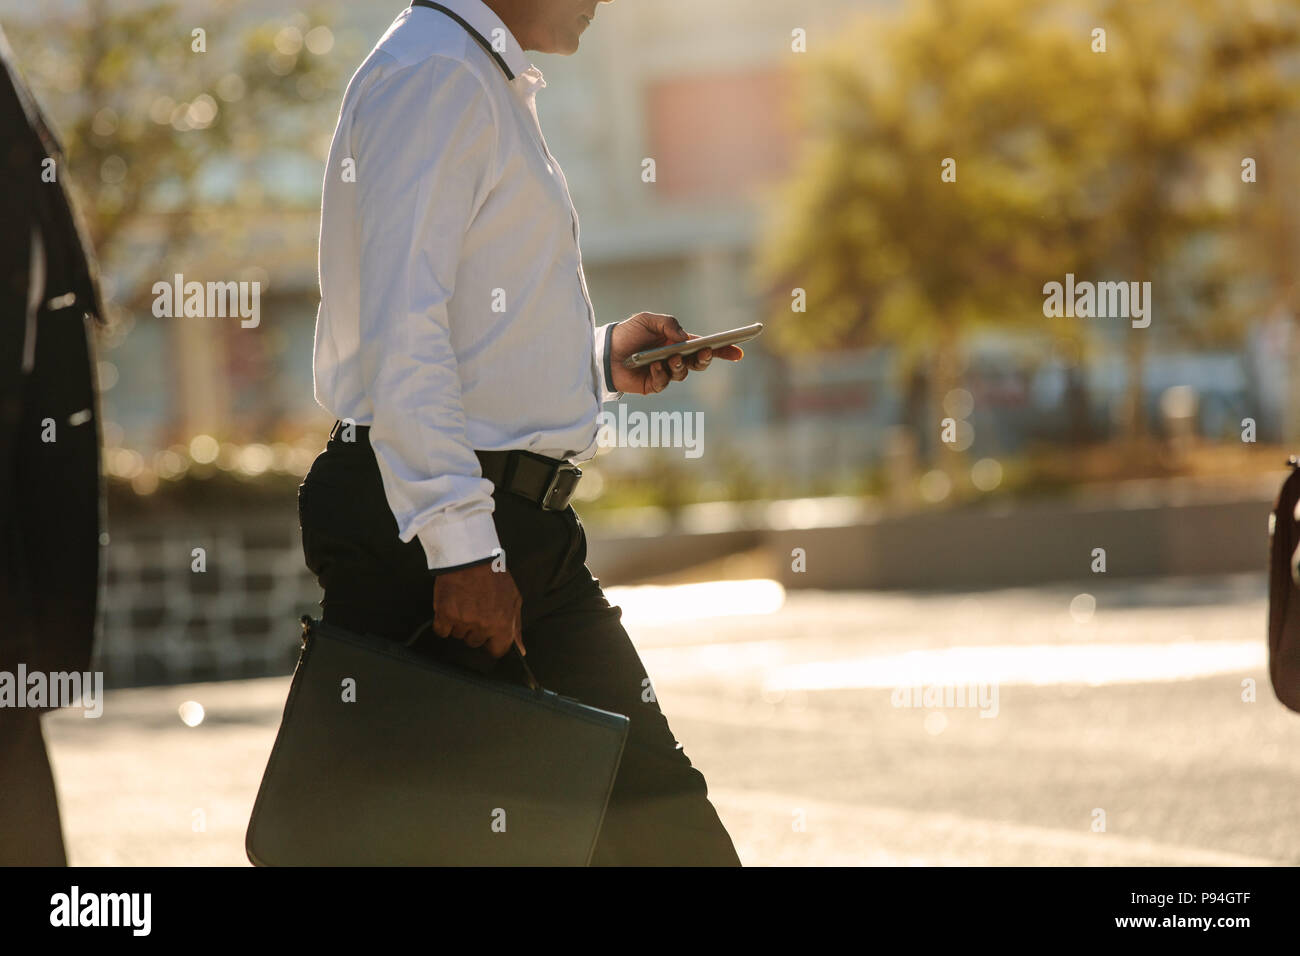 Businessman using mobile phone while commuting to office. Busy office going person walking on street carrying his office bag looking at his mobile pho - Stock Image